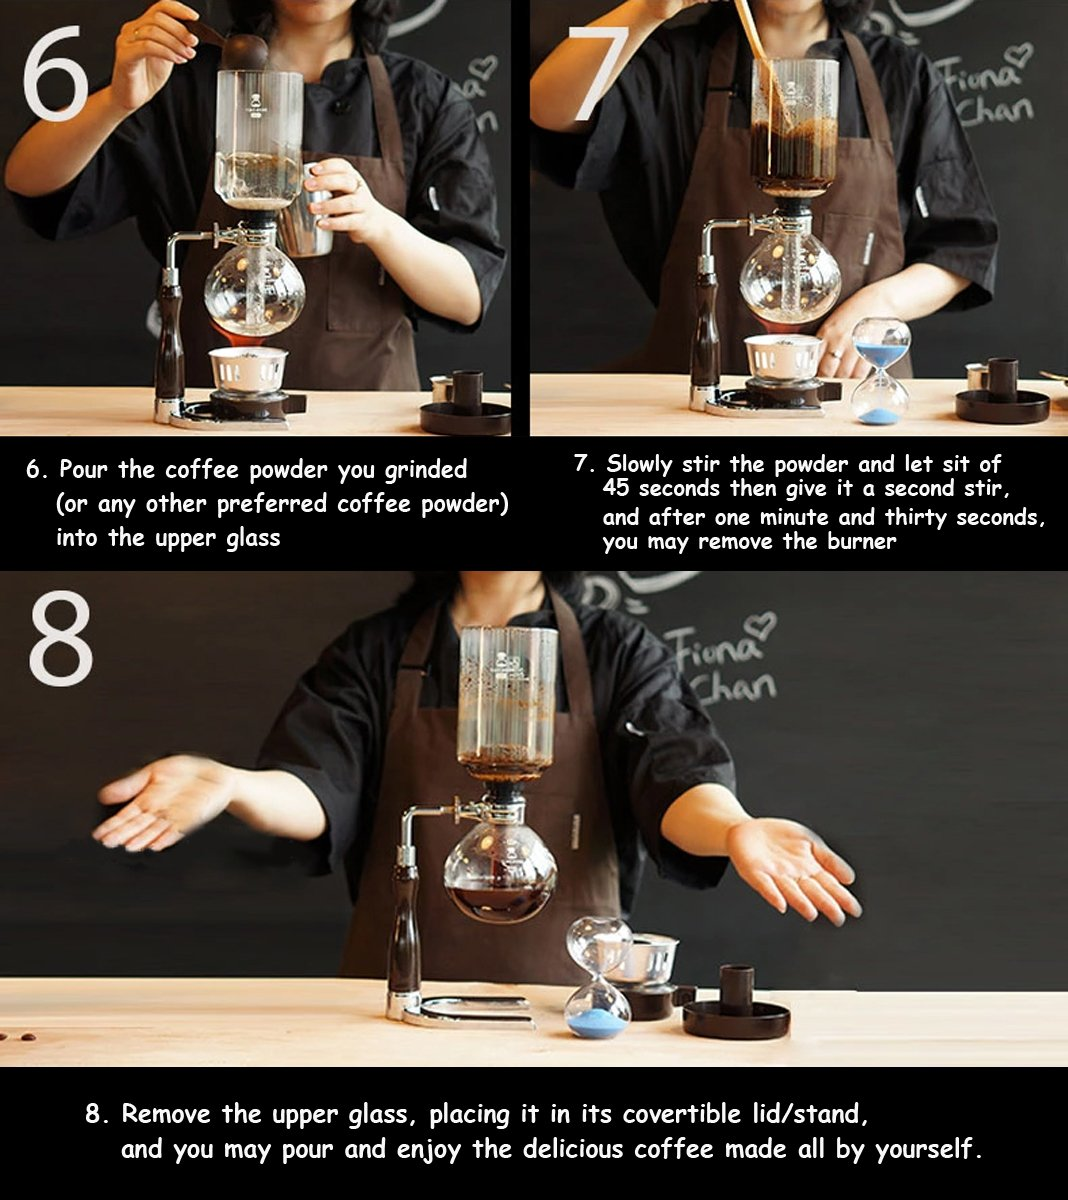 Minimalist Vacuum Siphon Coffee Maker, Easy Use Glass Tabletop Syphon Coffee Brewing Machine with Alcohol Burner, 5 Cup (Black) by TIMEMORE